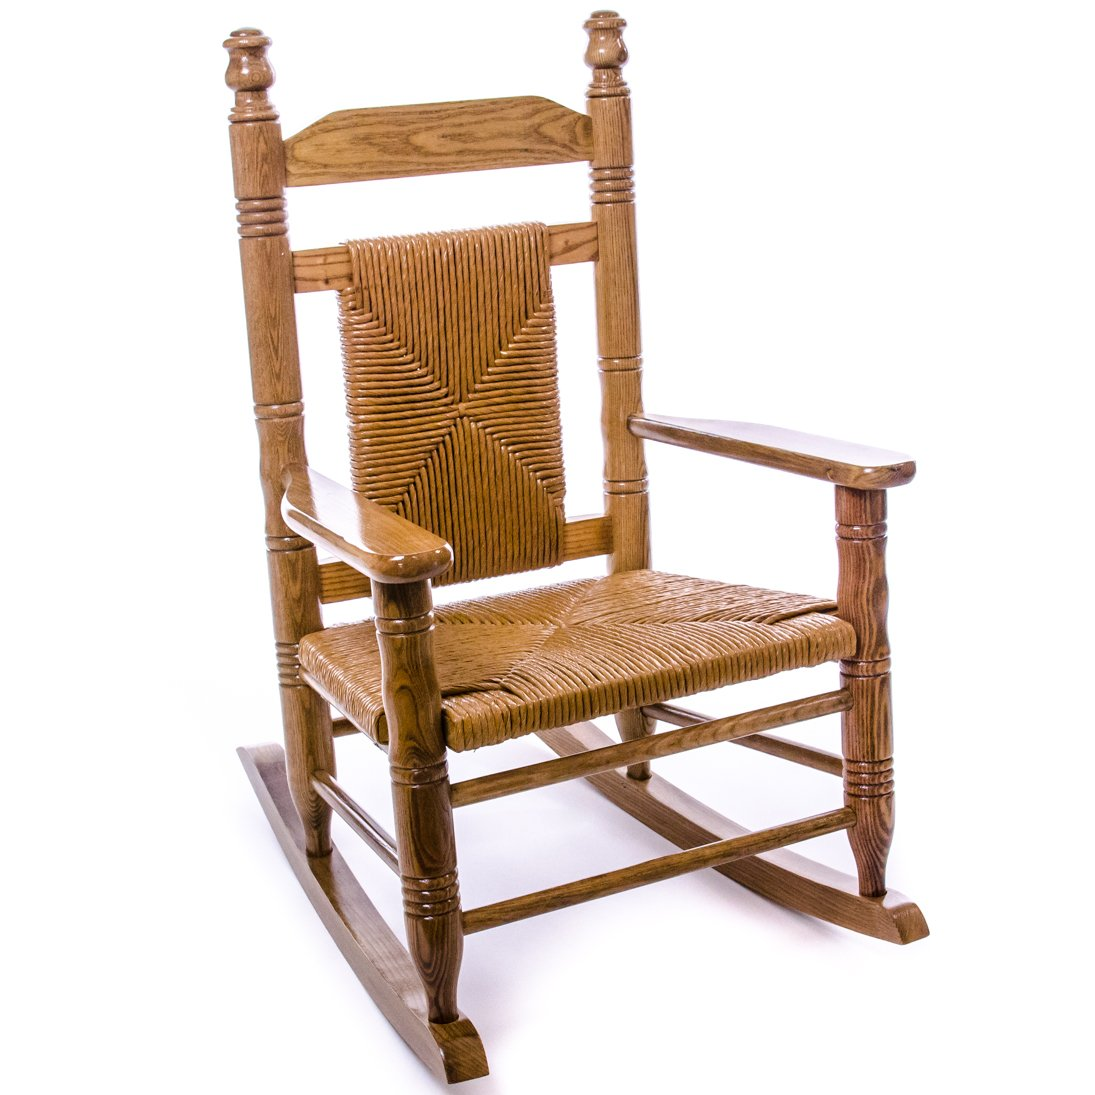 Gentil Woven Child Seat Rocking Chair   Hardwood | Home Furniture | Indoor  Furniture | Rocking Chairs | Cracker Barrel Old Country Store   Cracker  Barrel Old ...